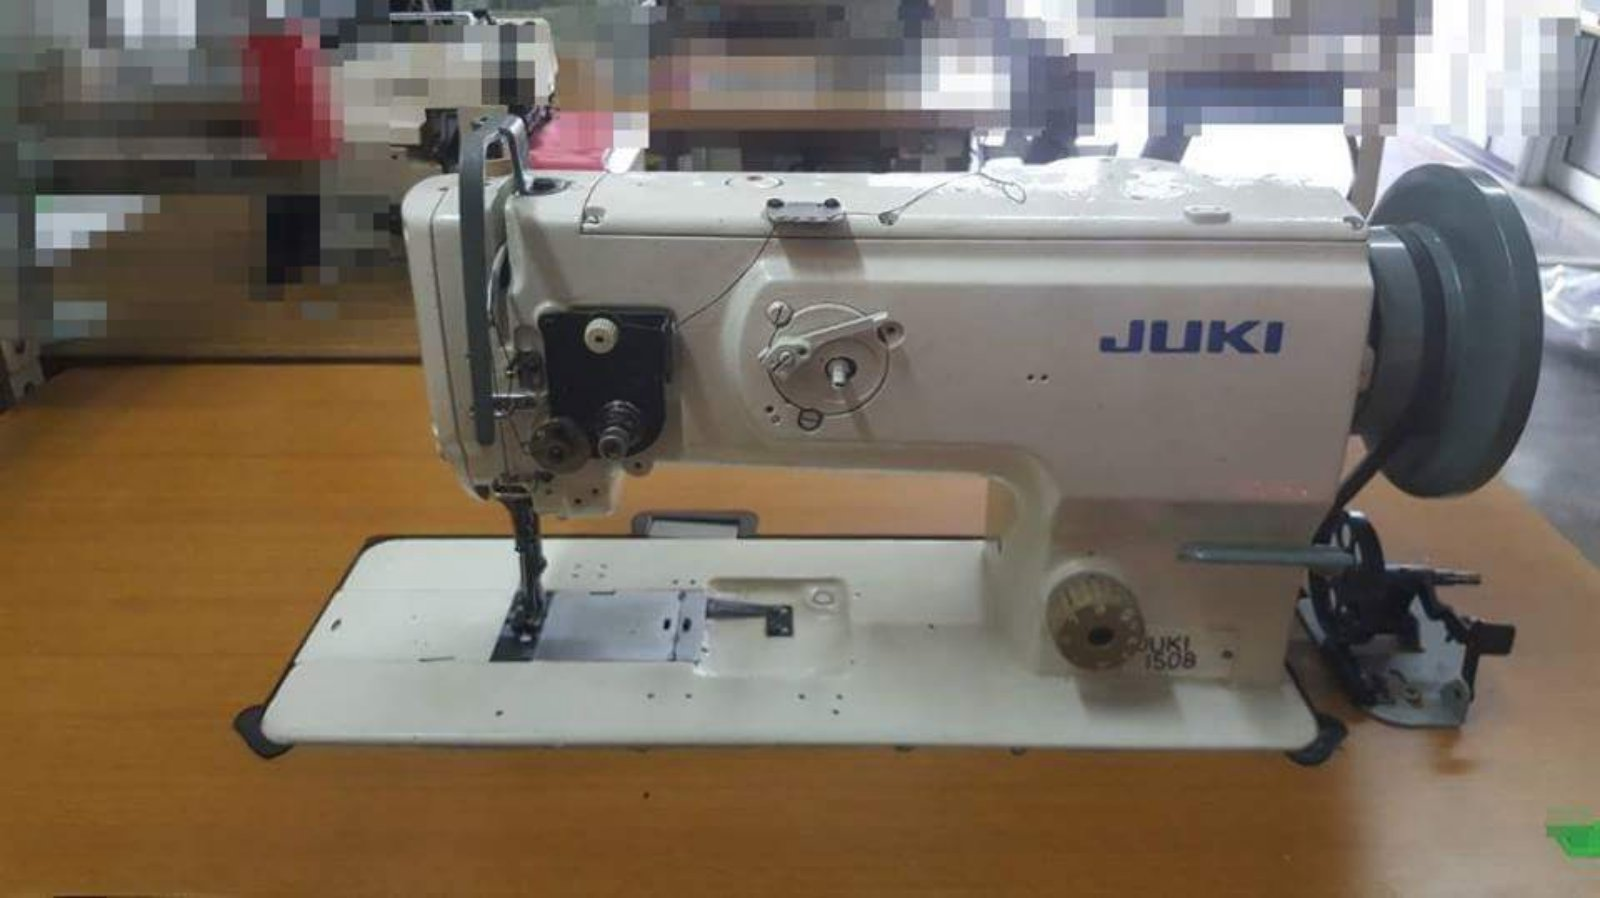 Second Hand Sewing Jears Machine!